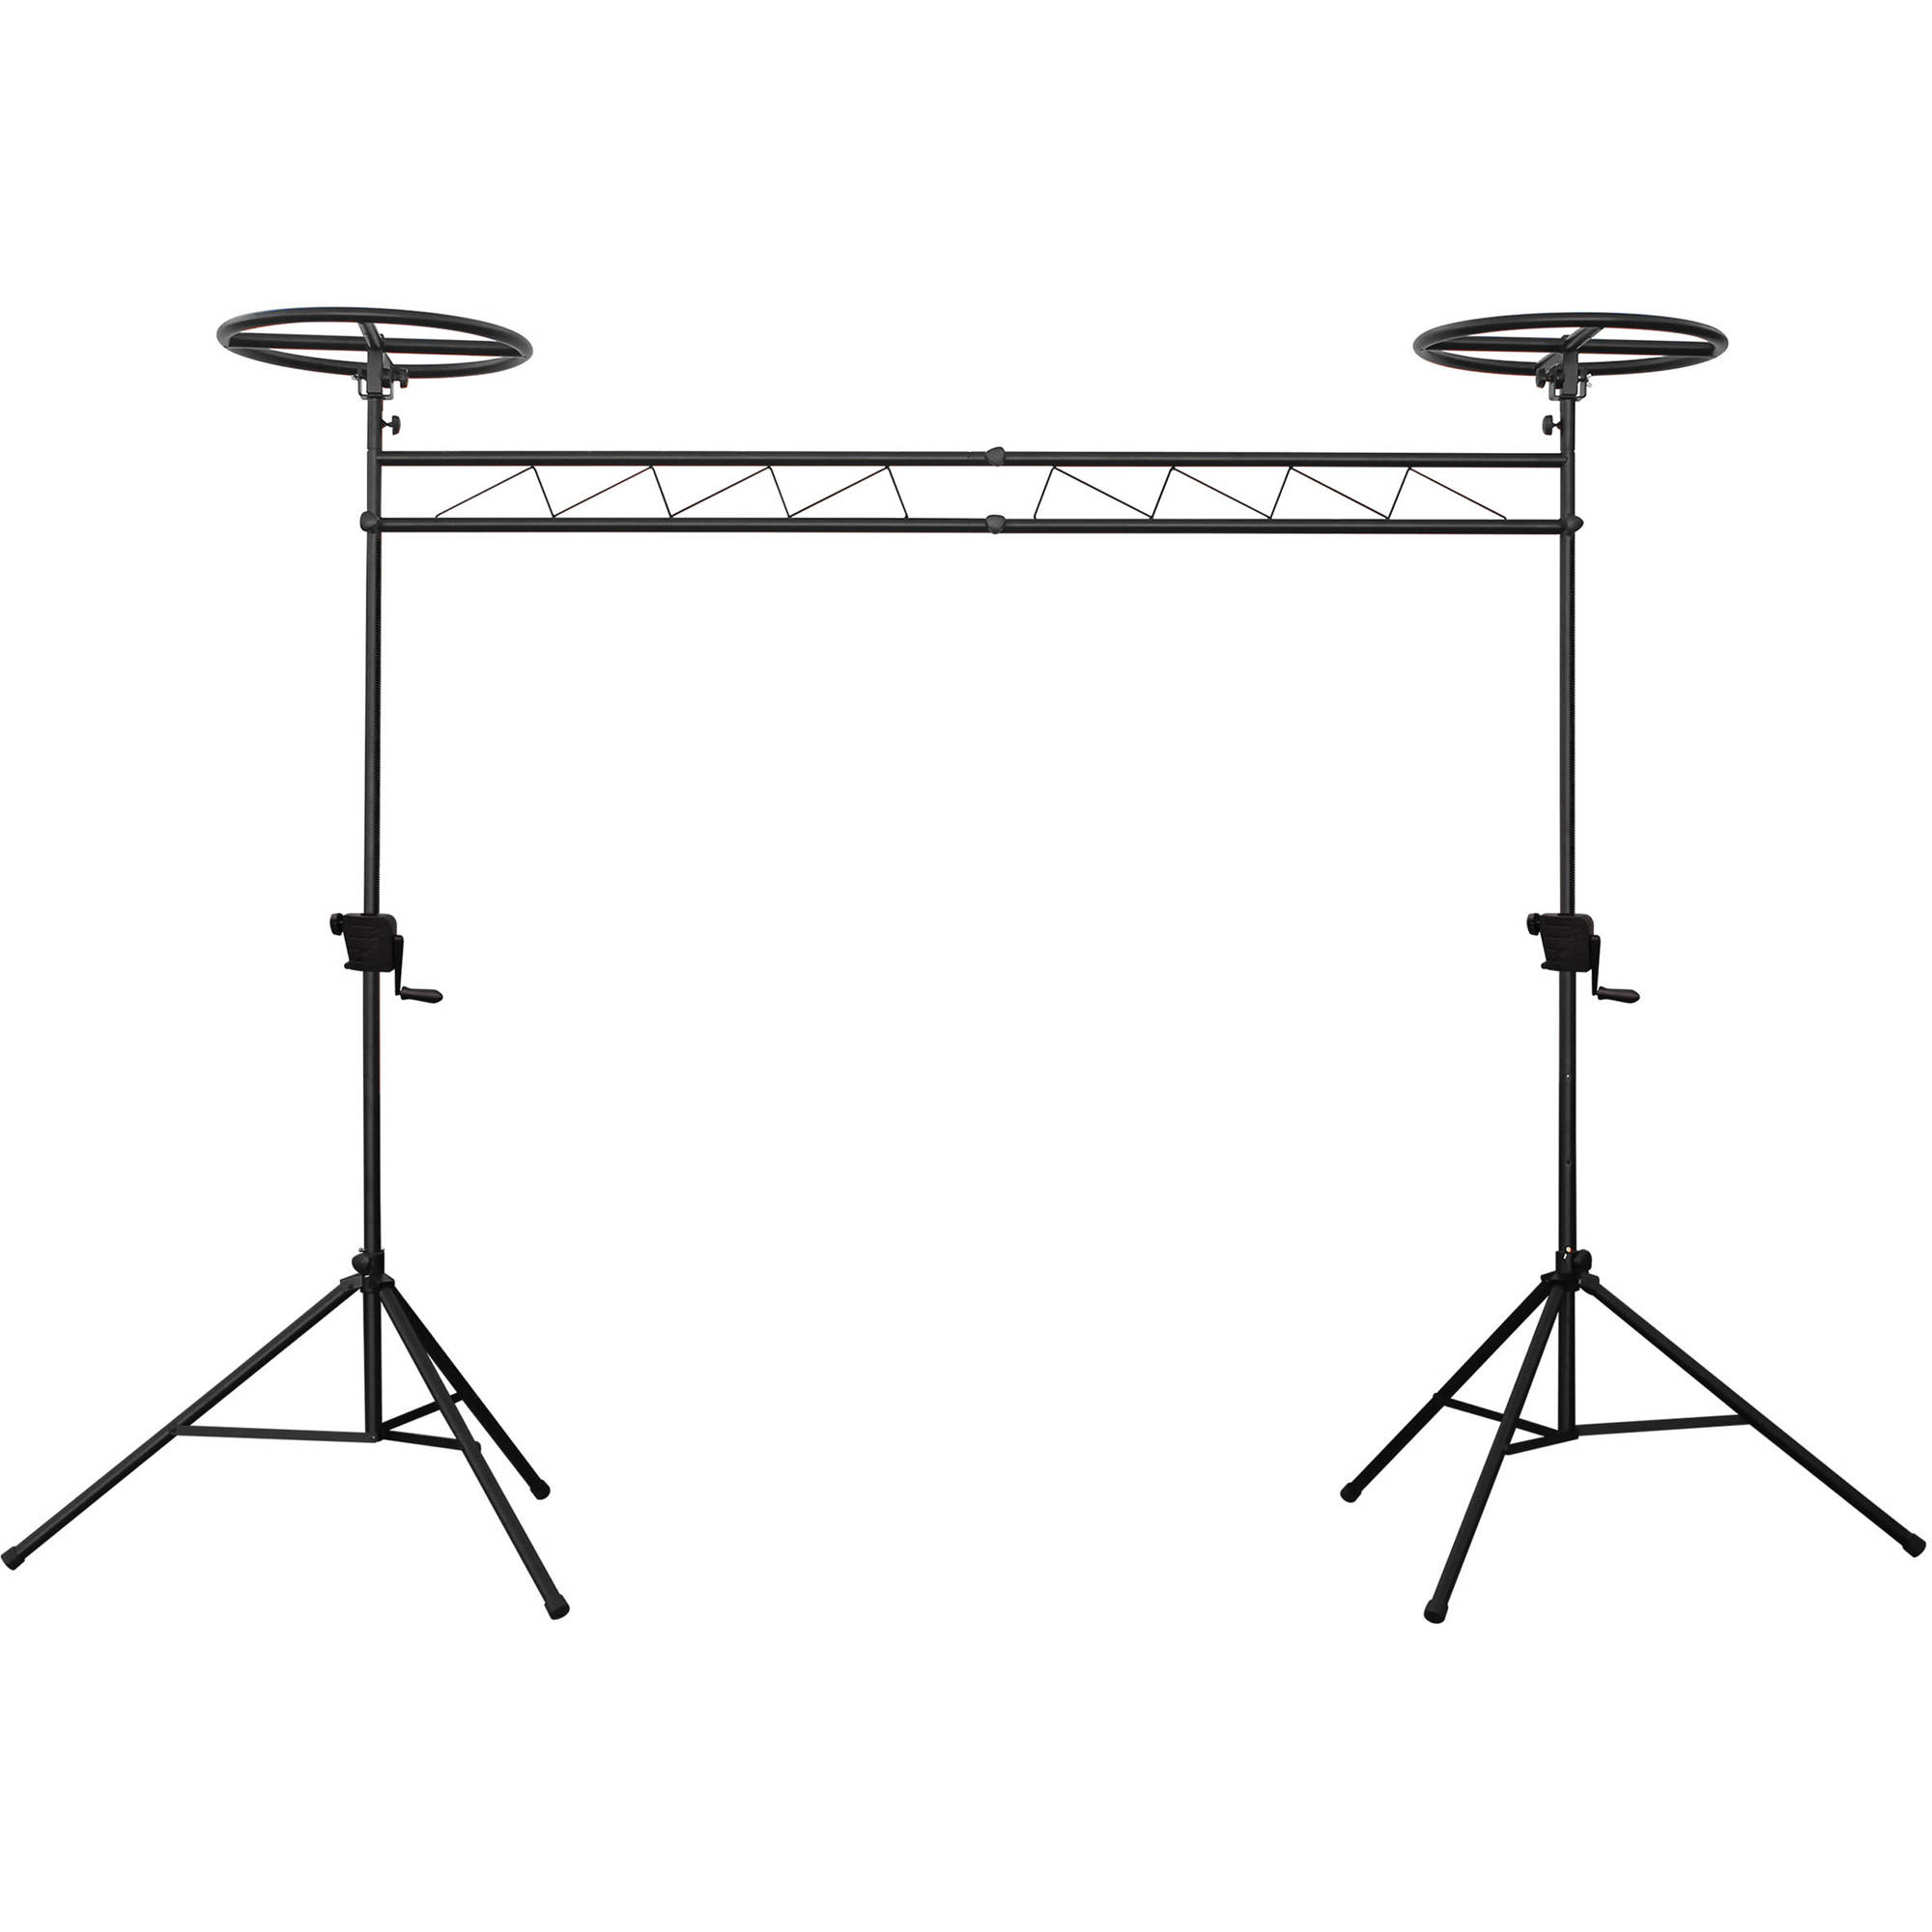 lighting halogen light melbourne equipment stands truss stage company hire dj